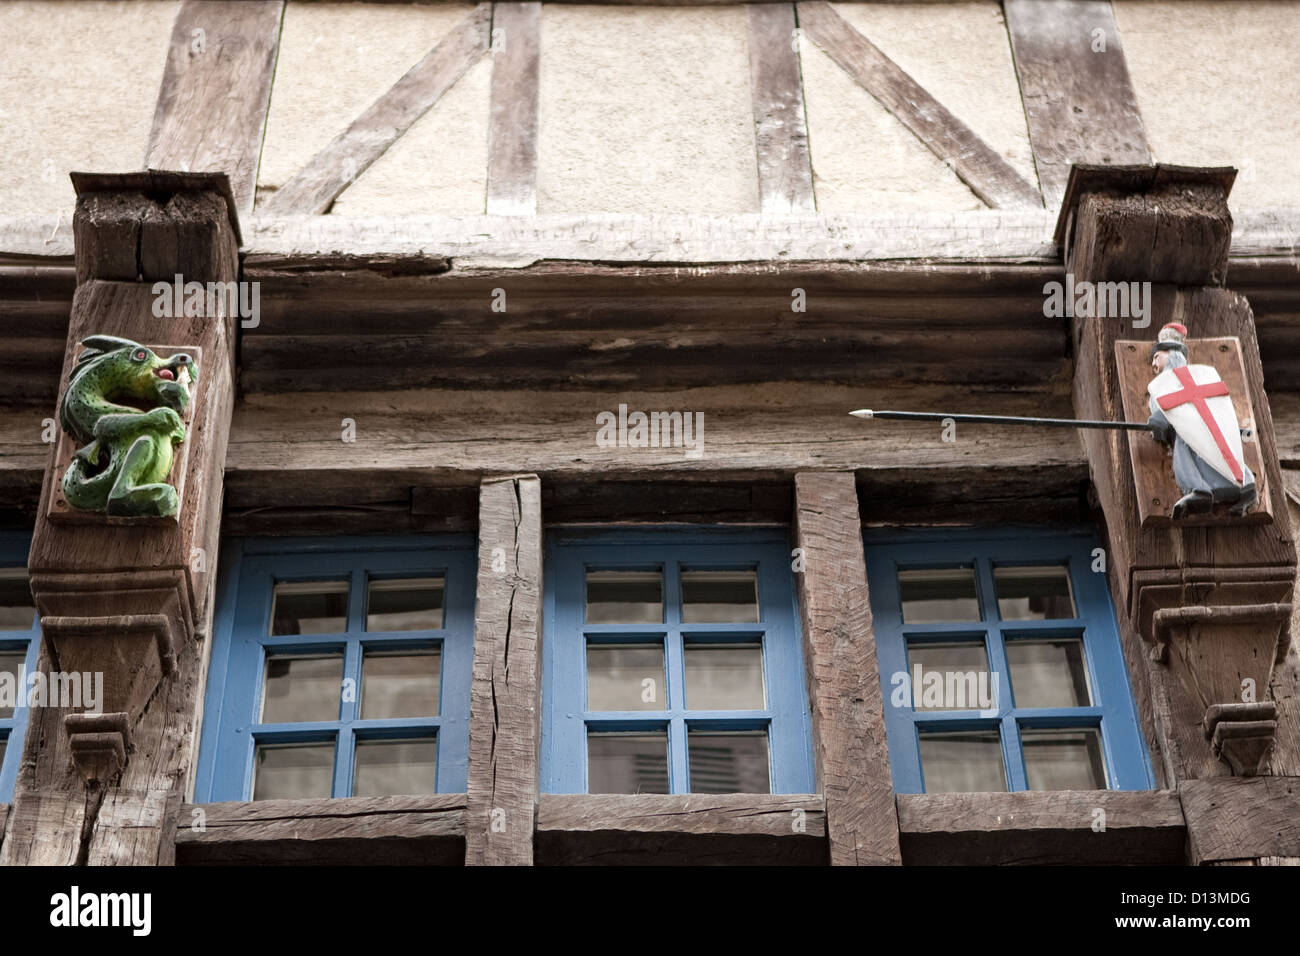 George & Dragon motifs Dinan Brittany France - Stock Image